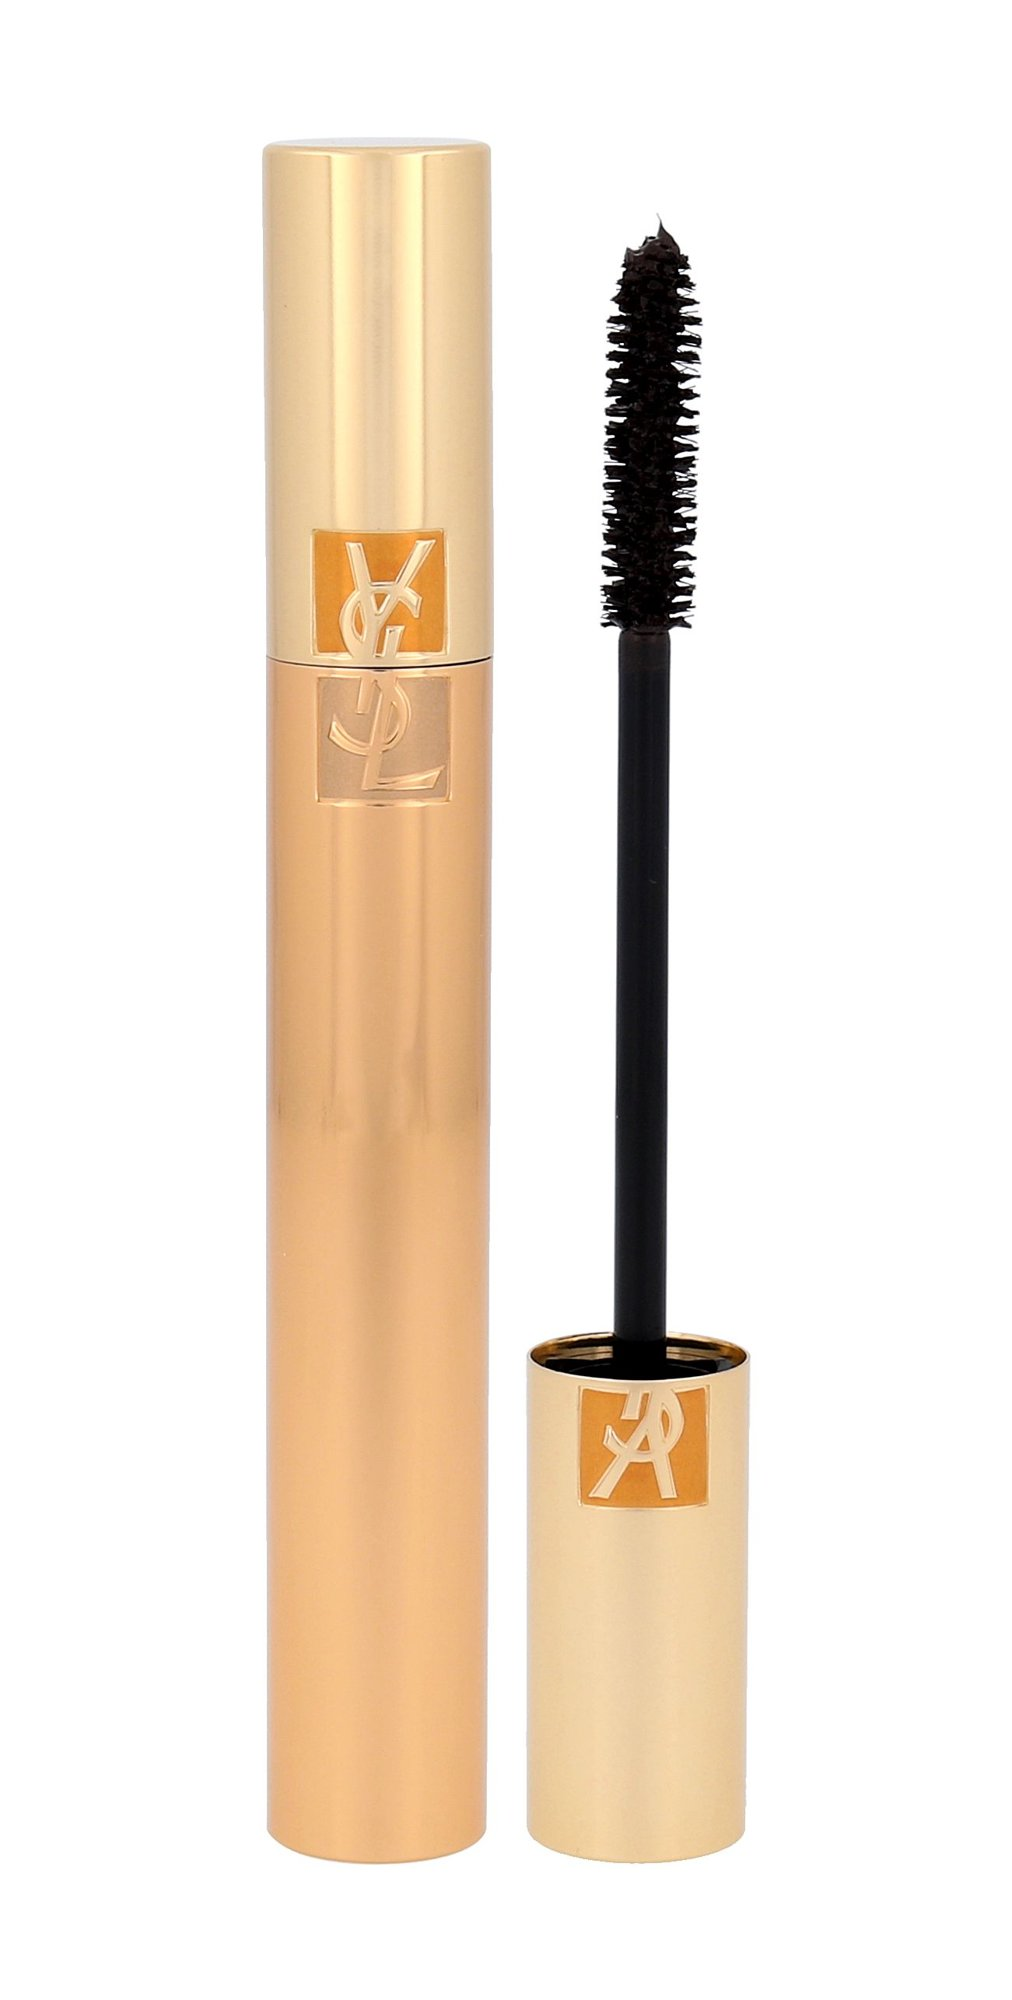 Yves Saint Laurent Mascara Volume Effet Faux Cils 02 Cosmetic 7,5ml 2 Brown